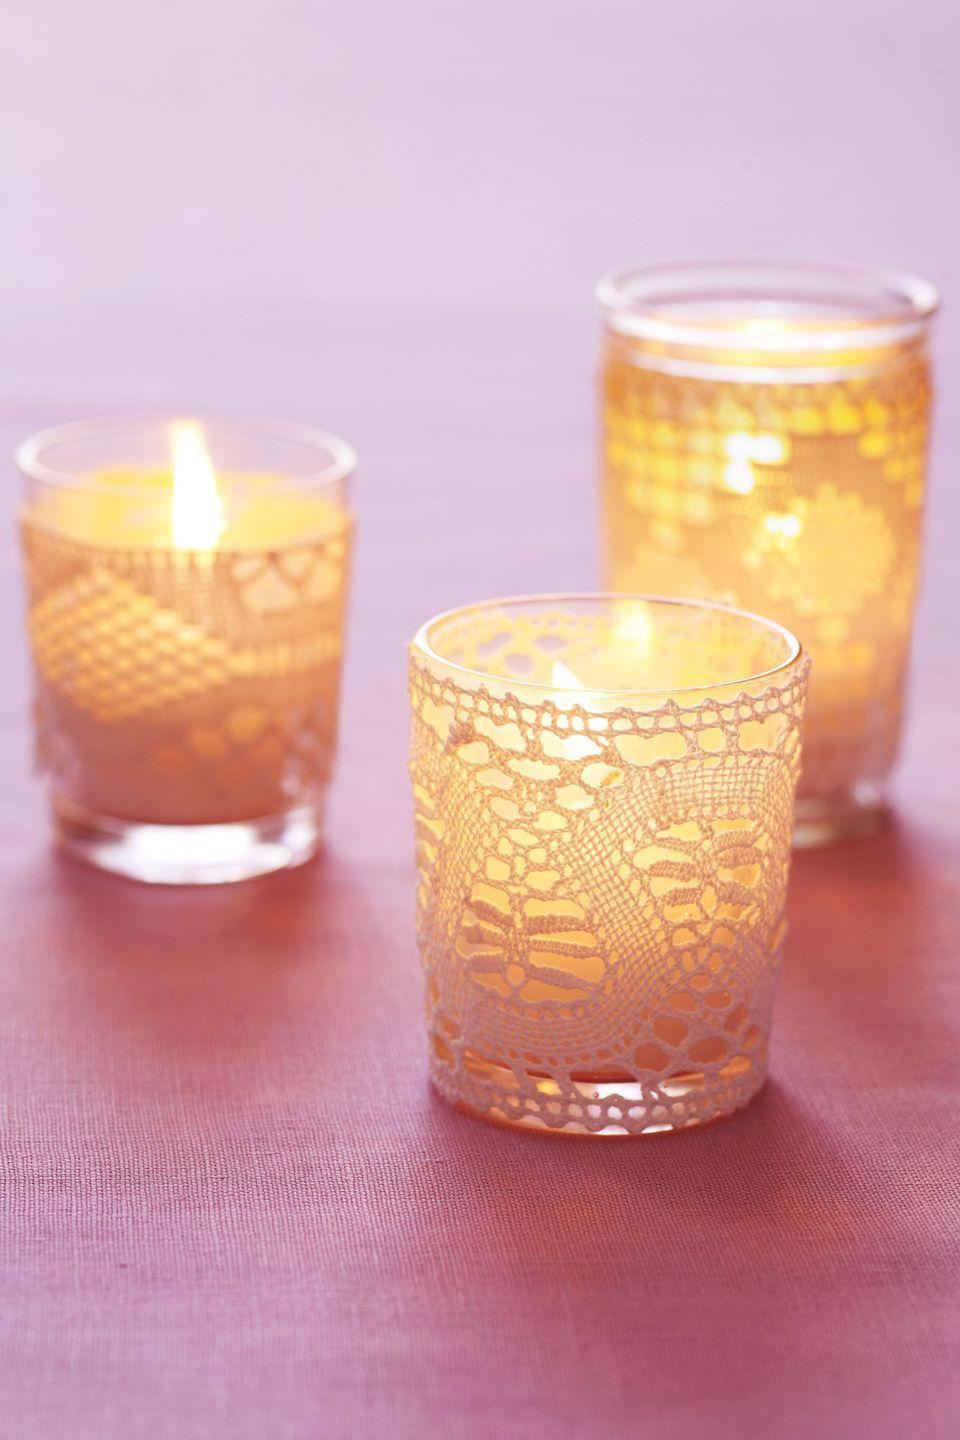 <p>Lacey candle holders make for a soft and beautiful Valentine's Day gift. Just picture 20 of these scattered around a room — perfectly romantic, no? To make, simply glue lace to clear glass votives. </p>